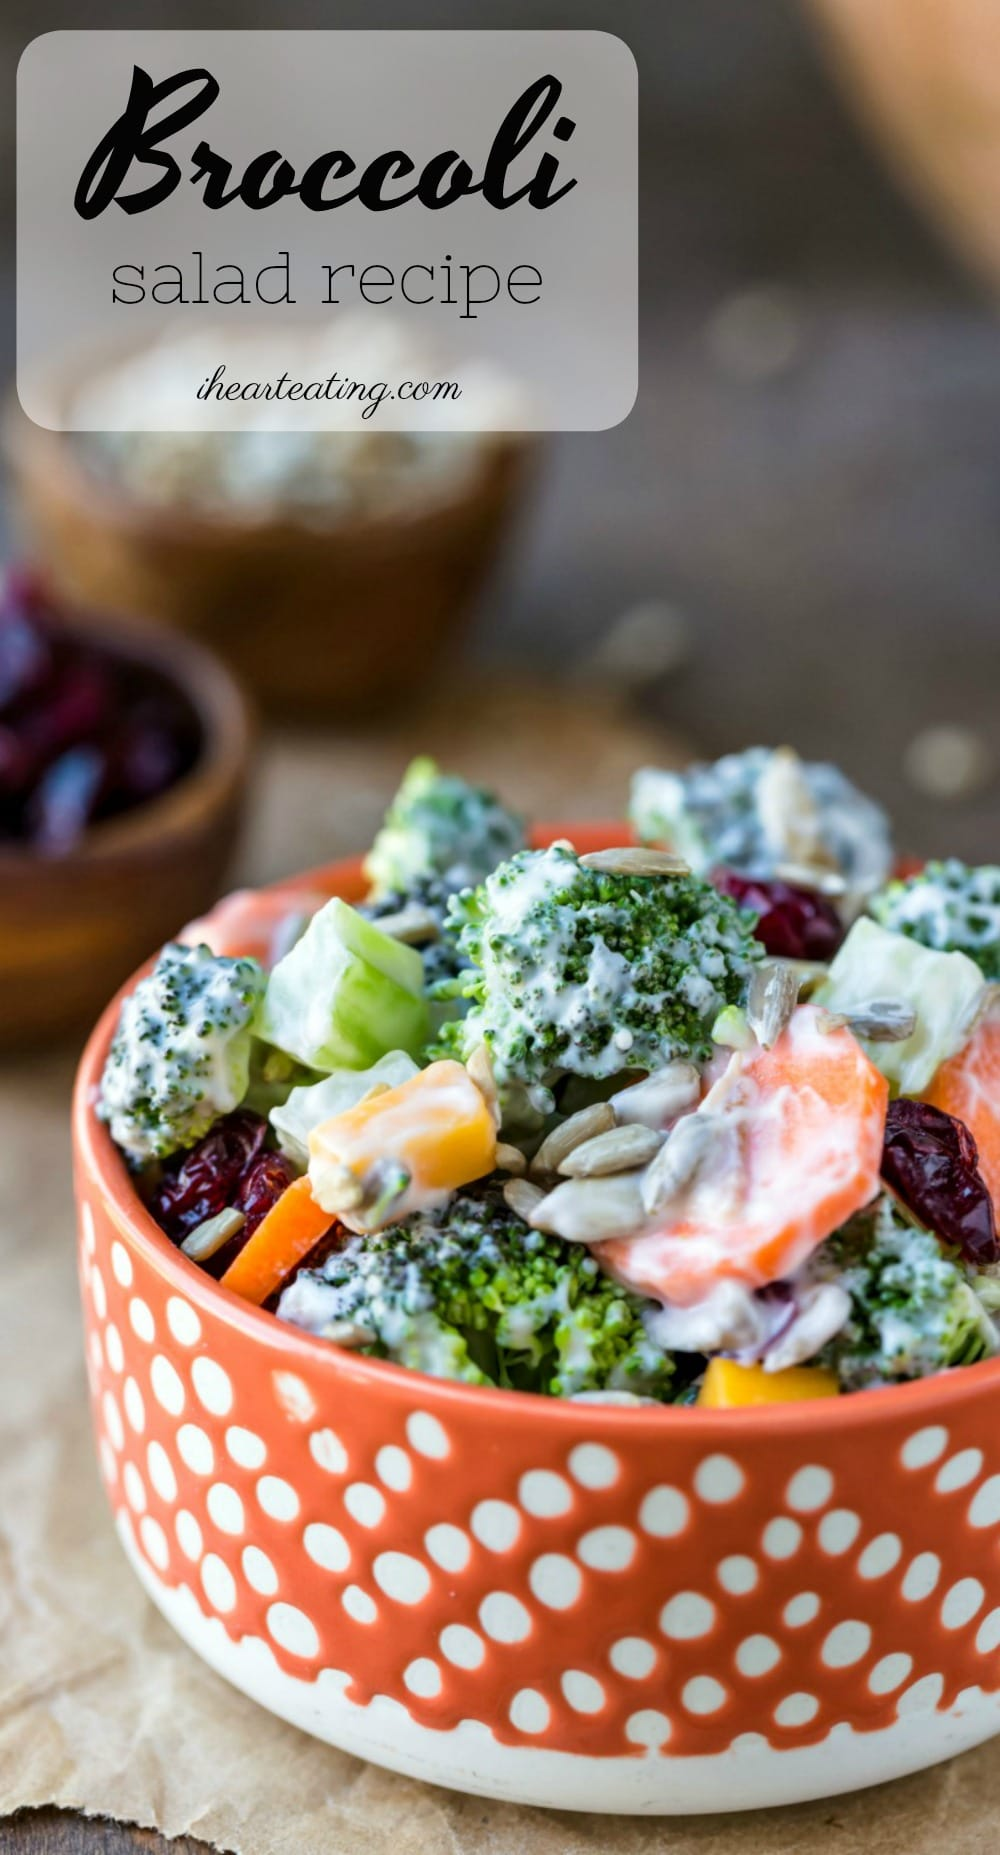 Broccoli Salad recipe is an easy, healthy side dish or light lunch or dinner that's made with broccoli, dried cranberries, bacon, and lots of other yummy ingredients! Includes directions for homemade broccoli salad dressing. #broccolisalad #salad #sidedish #barbecue #summer #potluck #makeahead #bacon #recipe #ihearteating